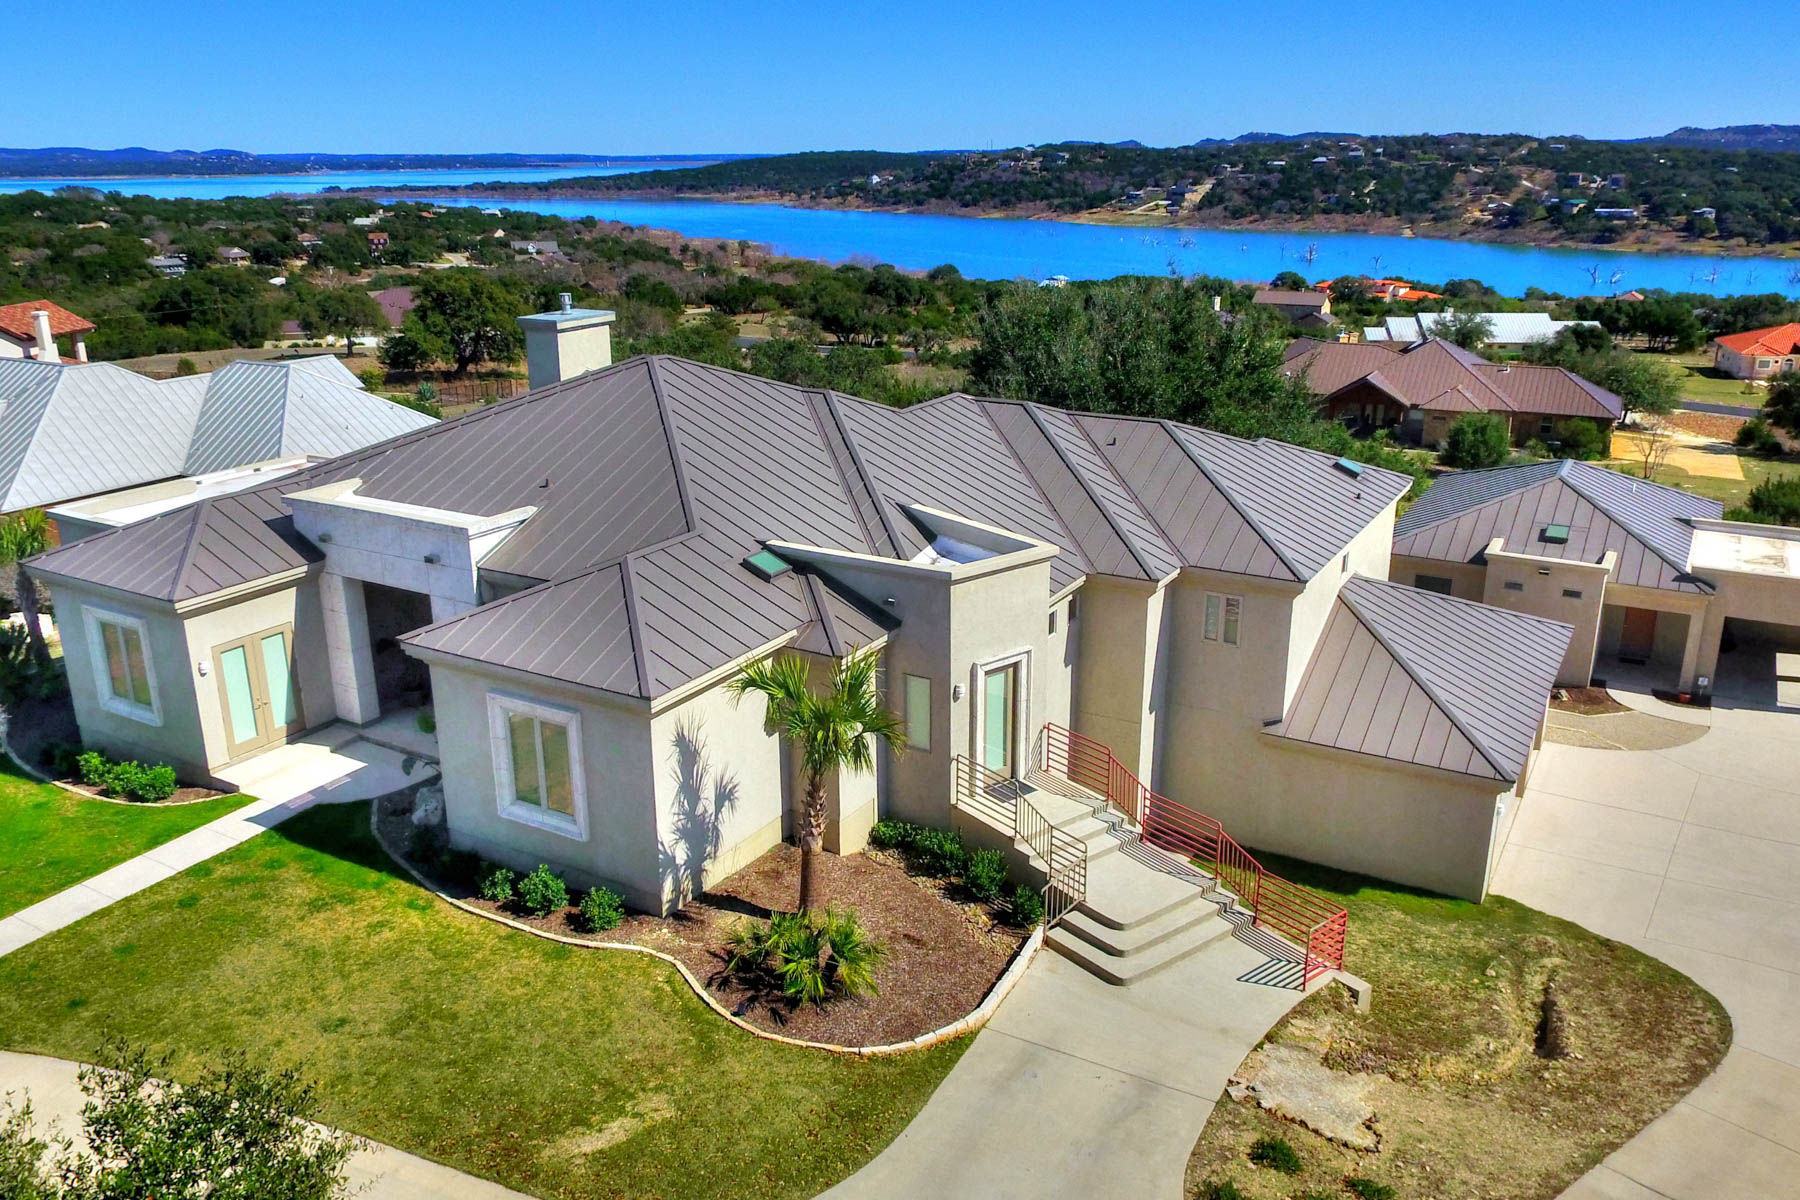 Casa Unifamiliar por un Venta en 1.02+/- Acres Overlooking Canyon Lake 255 San Salvadore Canyon Lake, Texas 78133 Estados Unidos